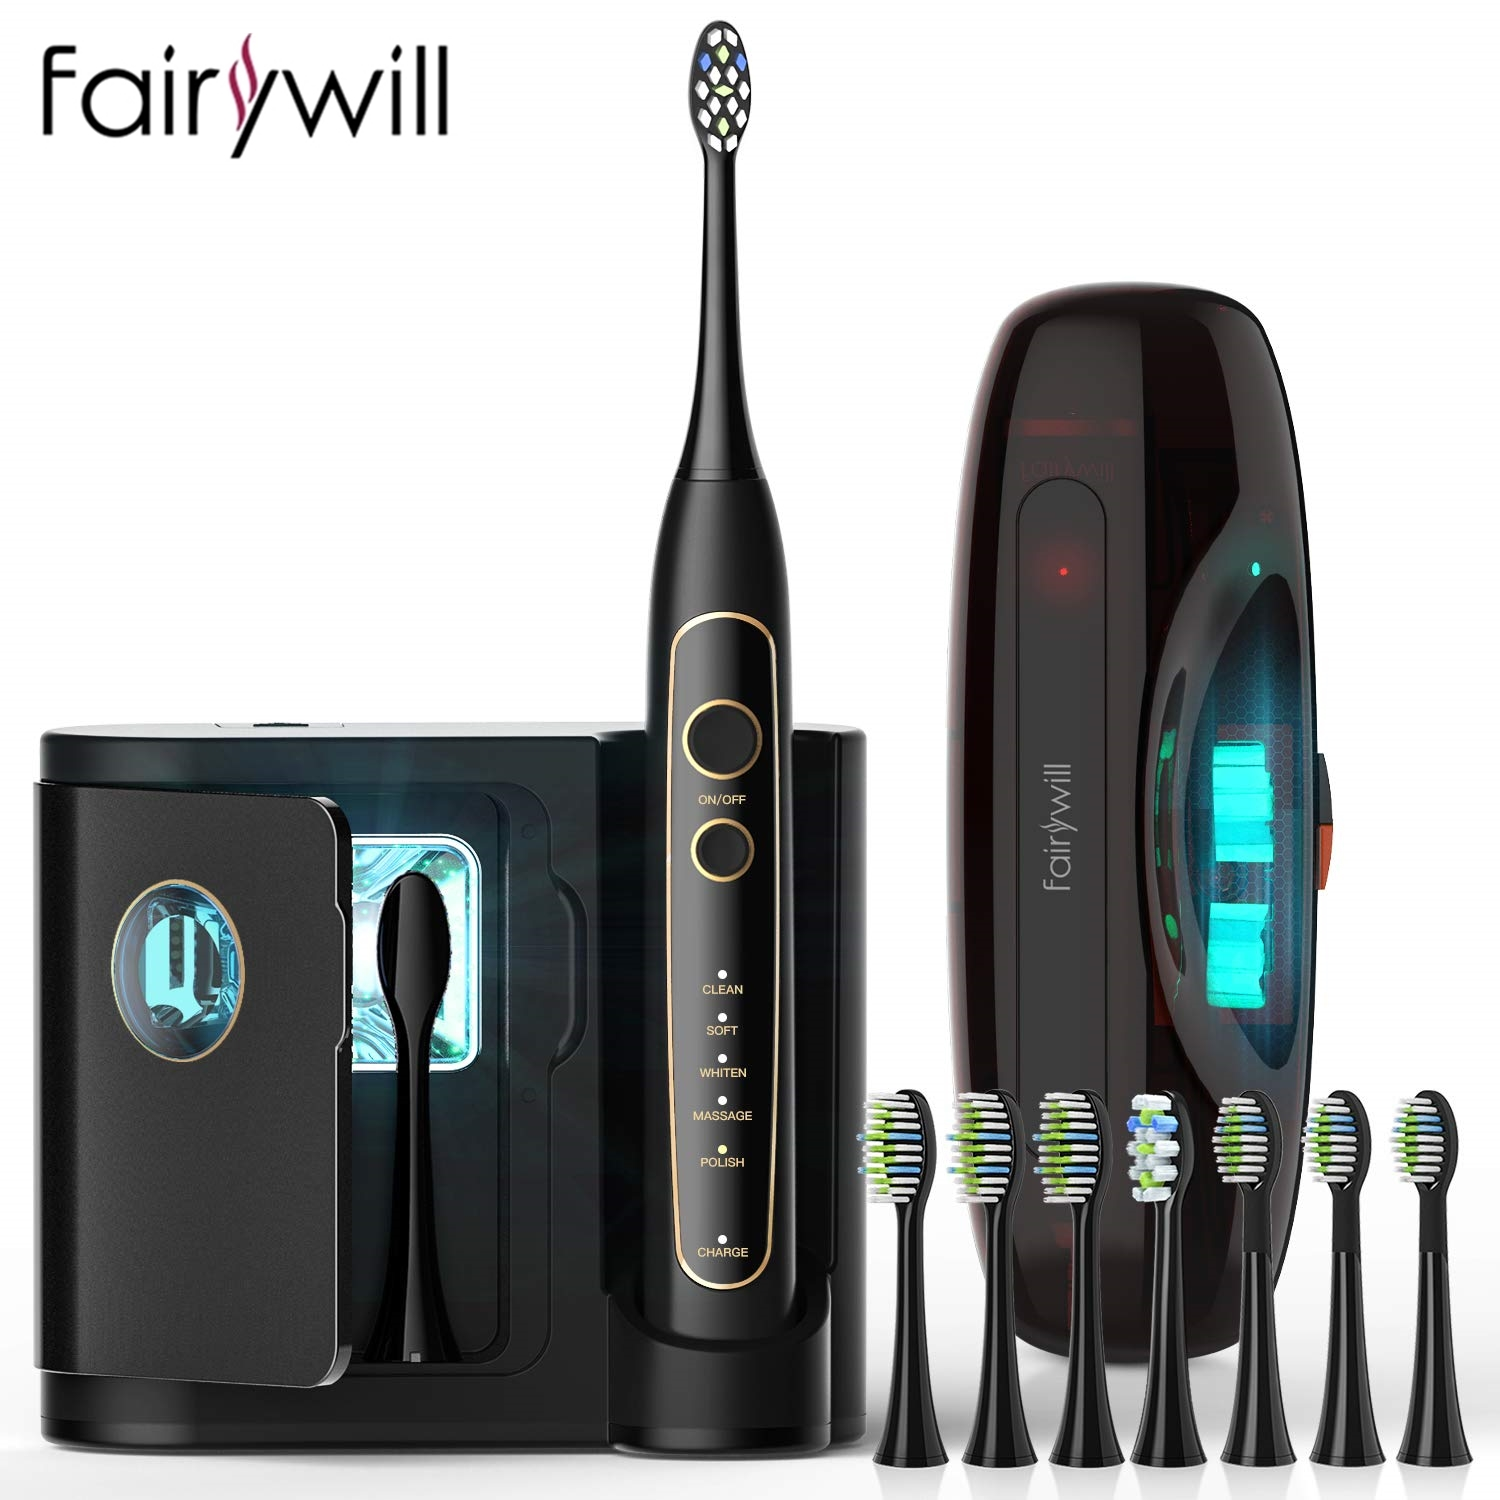 Fairywill high-tec Electric Toothbrush Travel case 5-Mode Ultra-Sonic Toothbrush pro FW-2056 Smart timer Wireless charging base